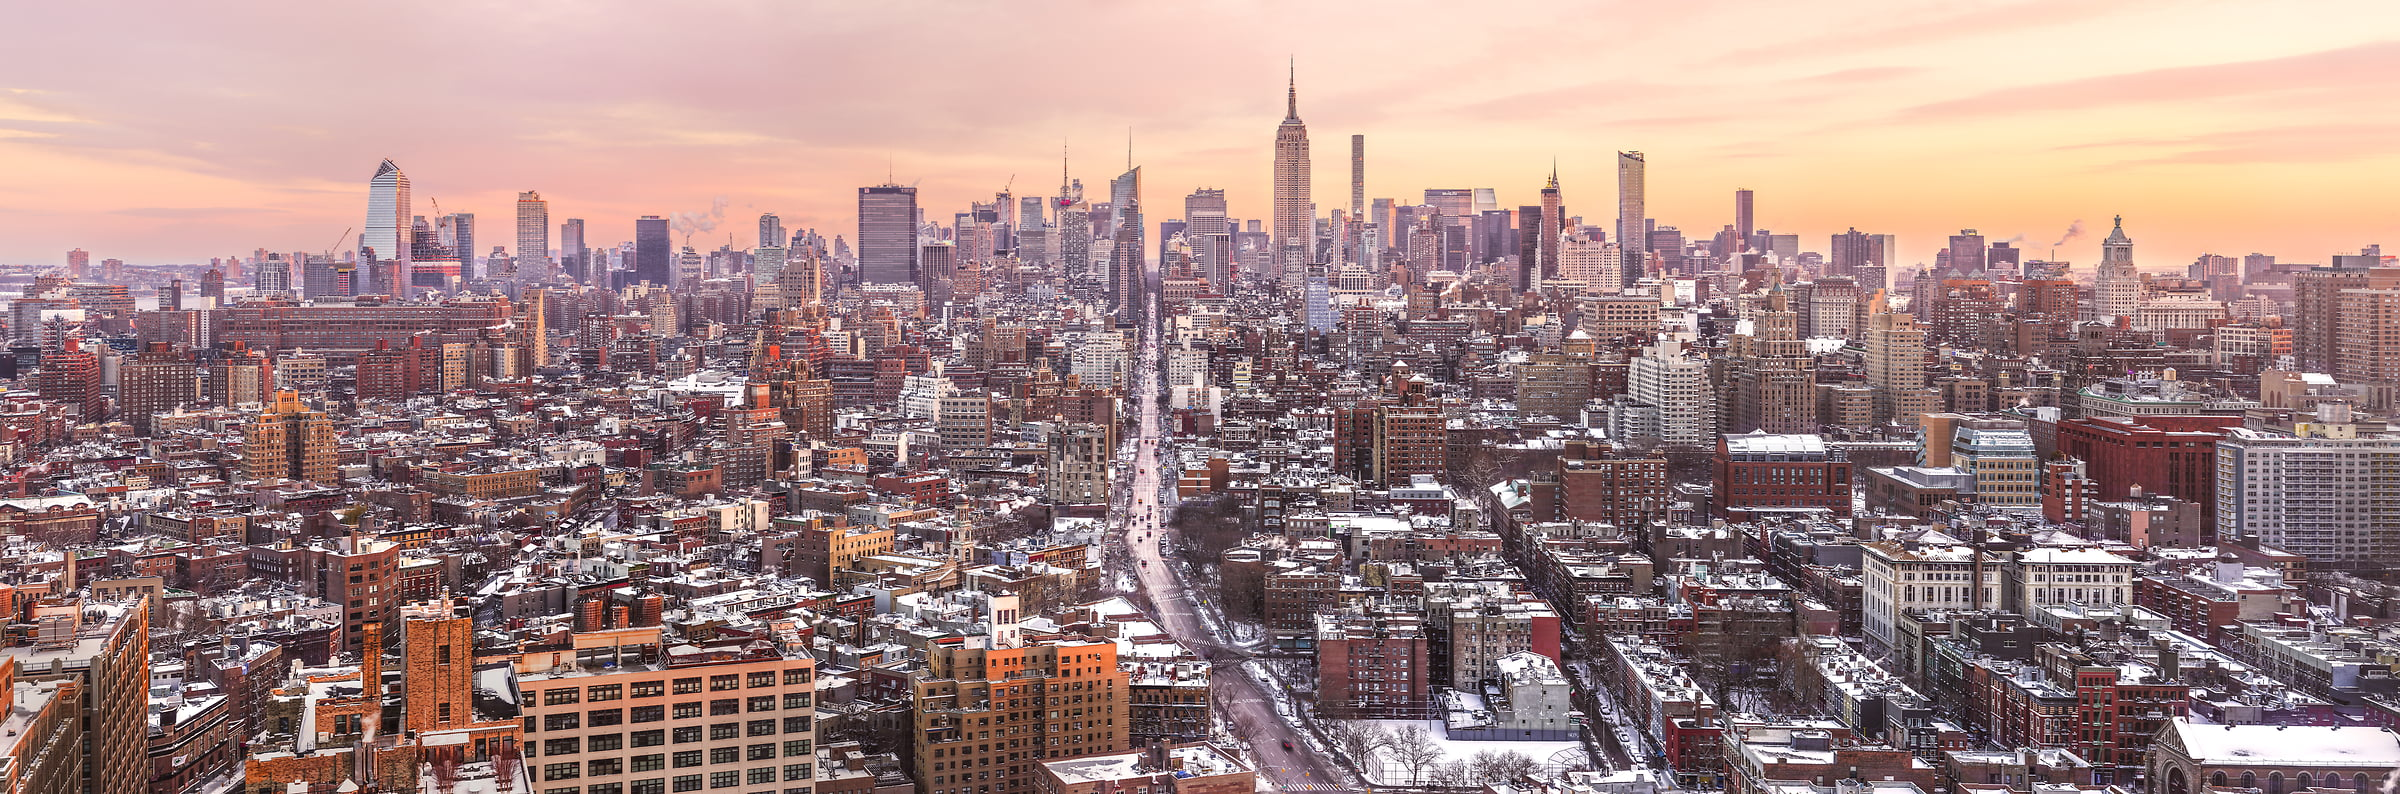 A very high resolution, large-format VAST photo print of the NYC skyline in winter snow; cityscape sunrise fine art photo created by Dan Piech in New York City